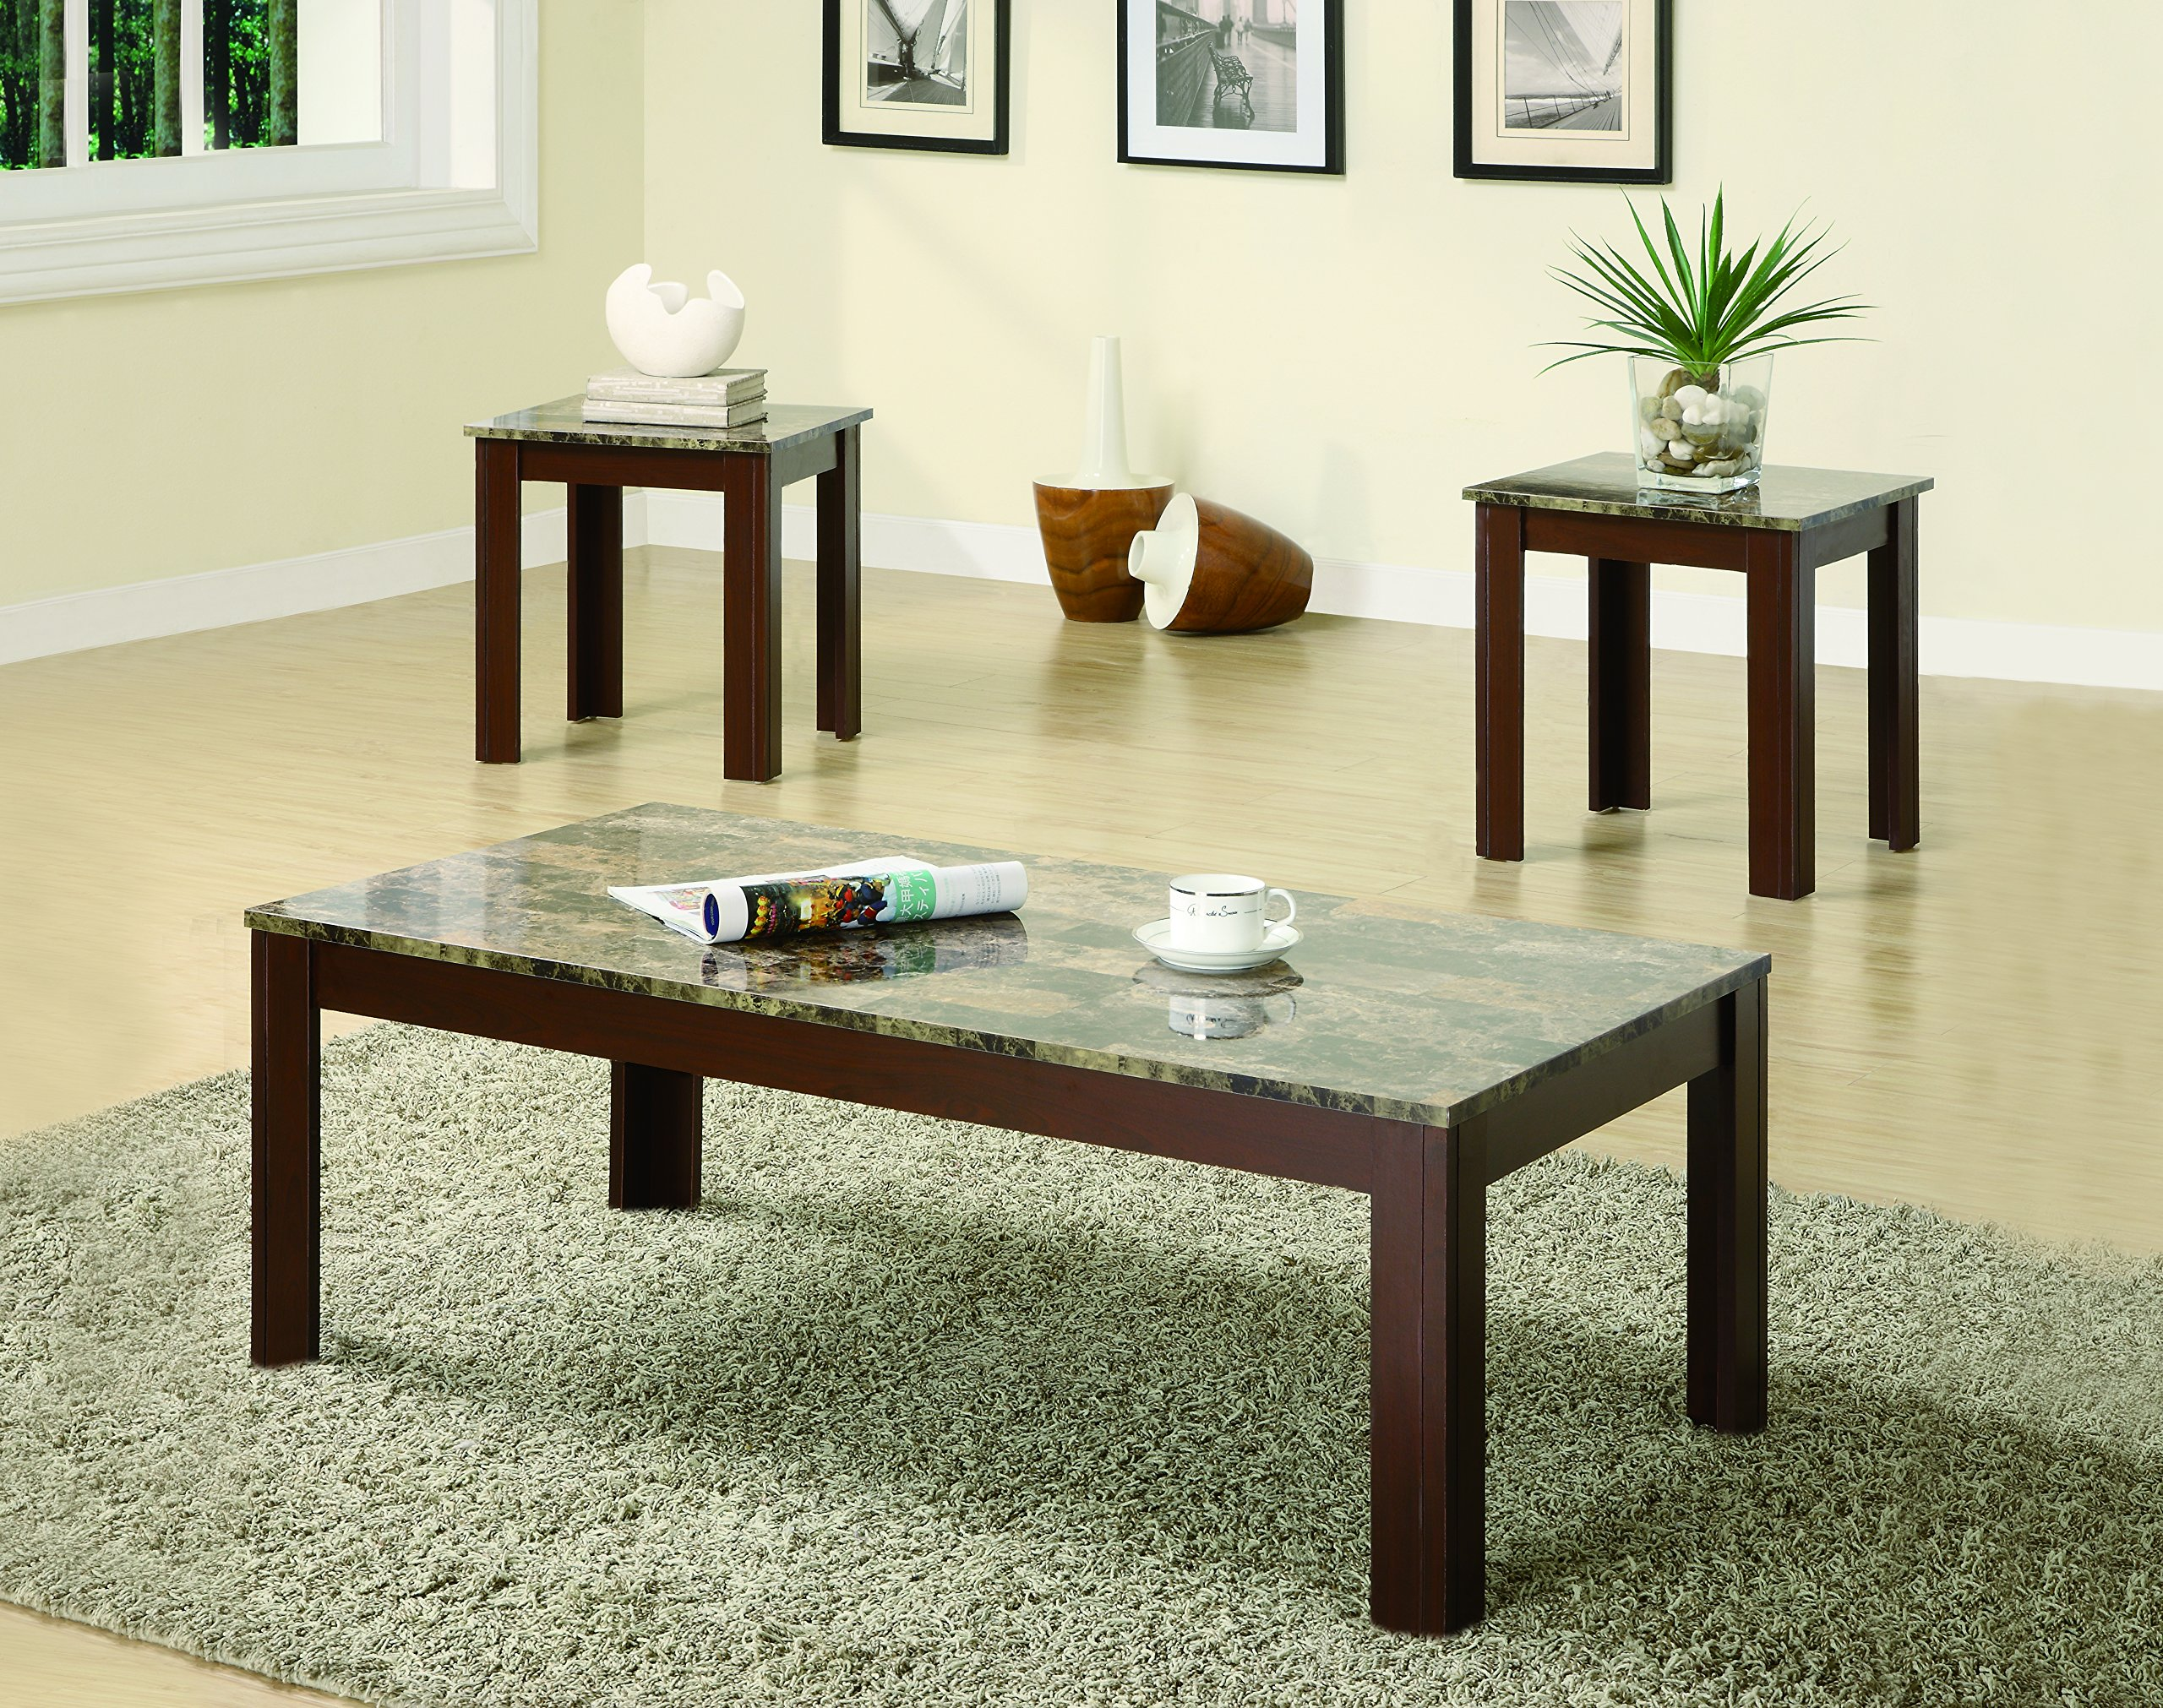 3-piece Occasional Table Set Brown by Coaster Home Furnishings